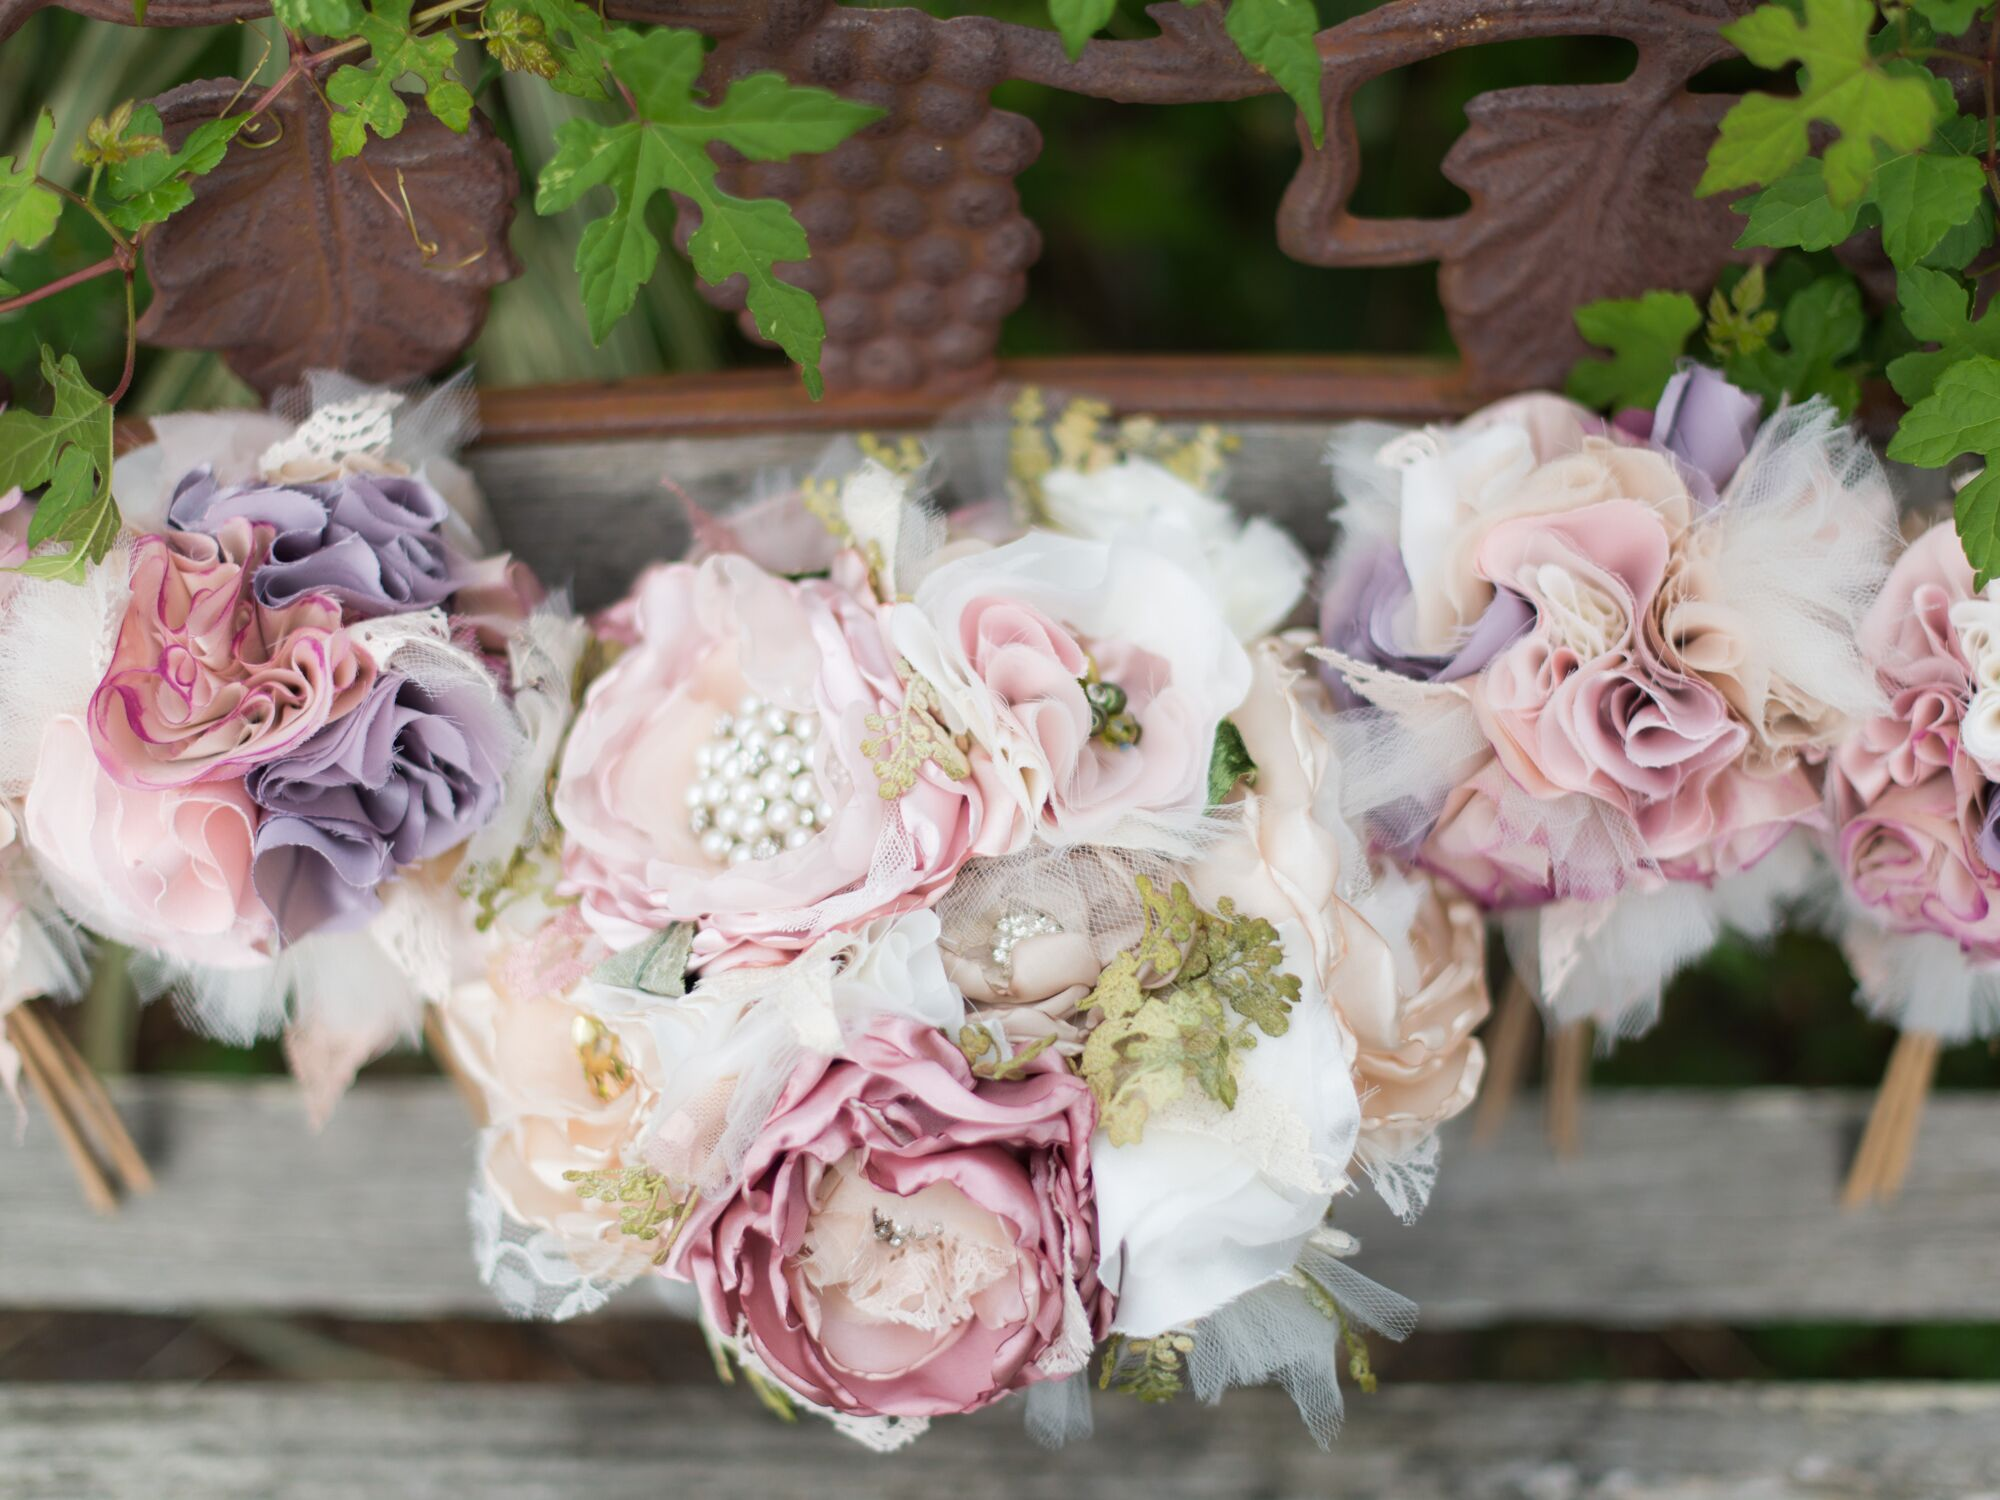 Silk Wedding Flowers Vs. Fresh